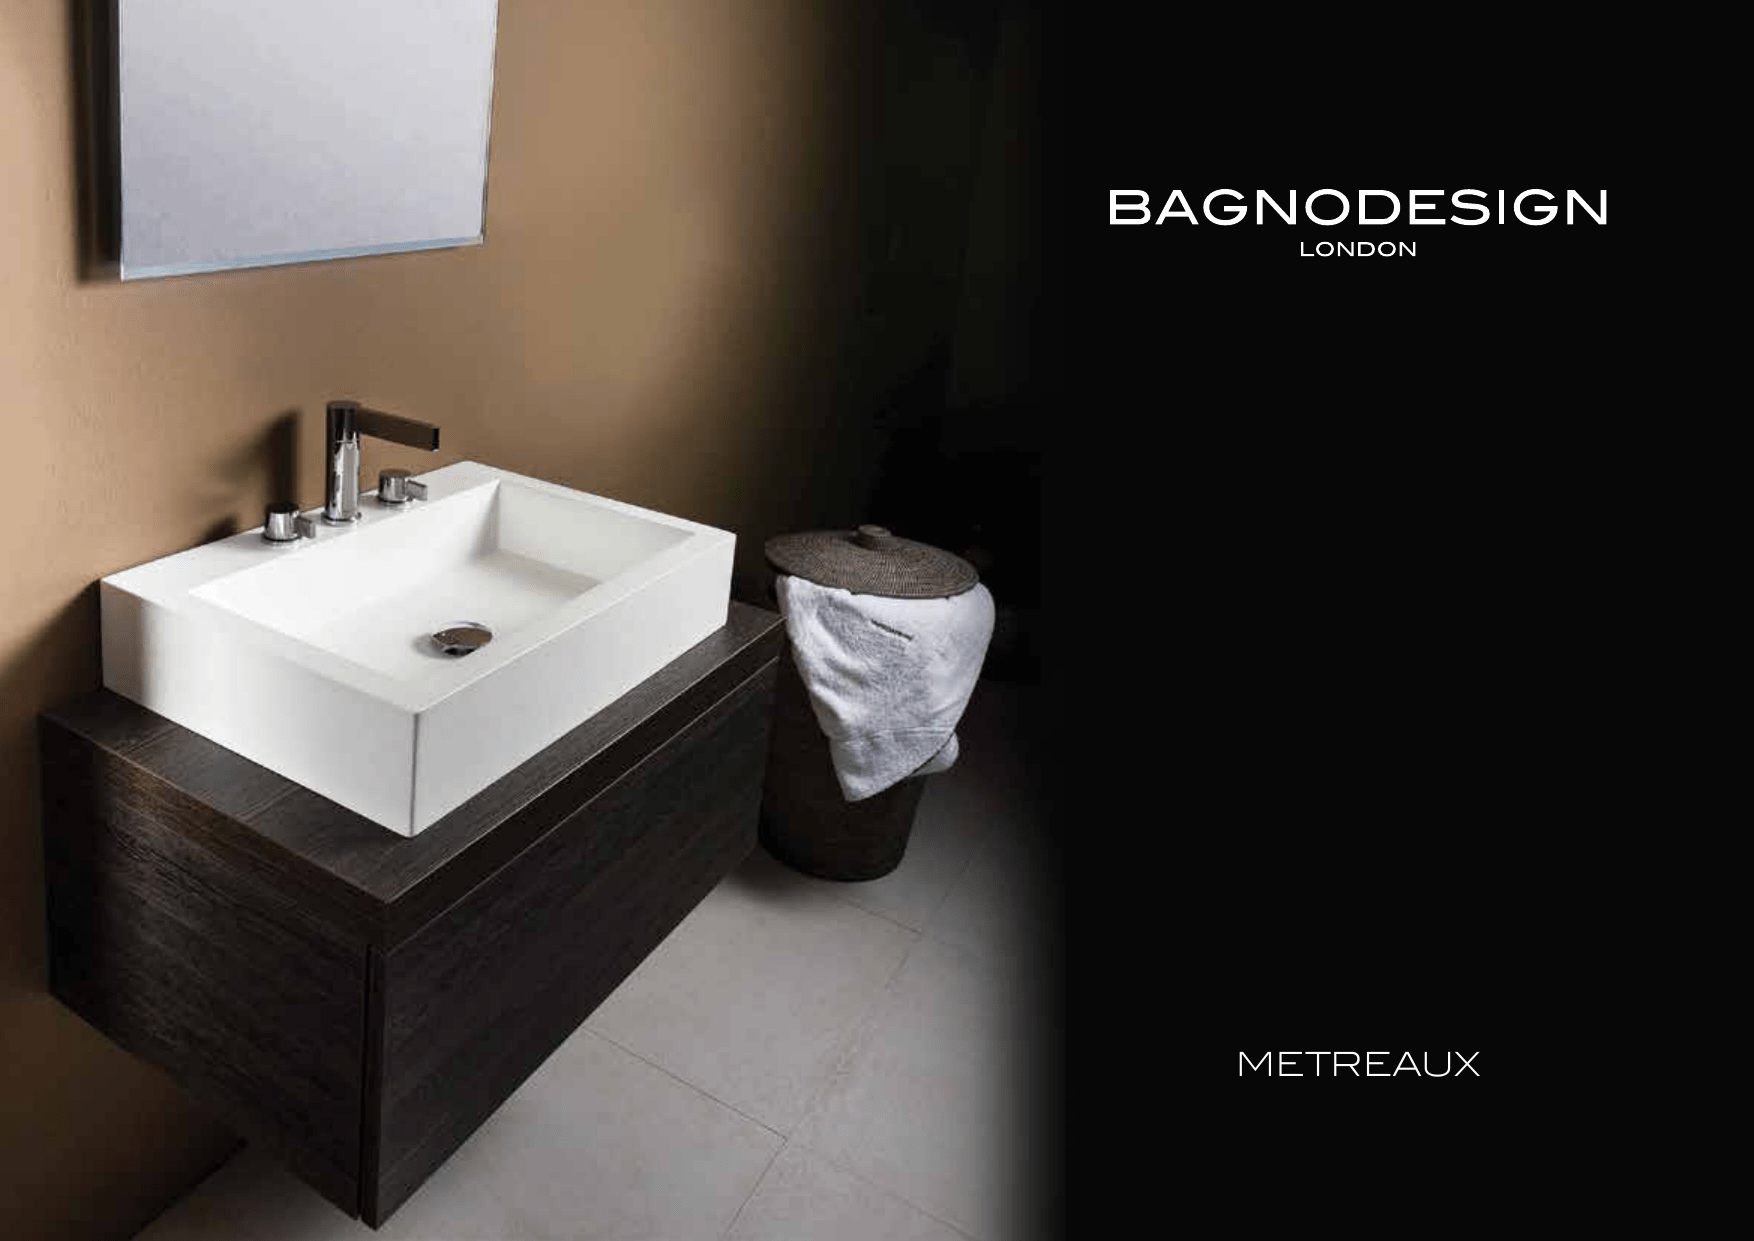 Bagno Design London Metreaux Bagno Design Manualzz